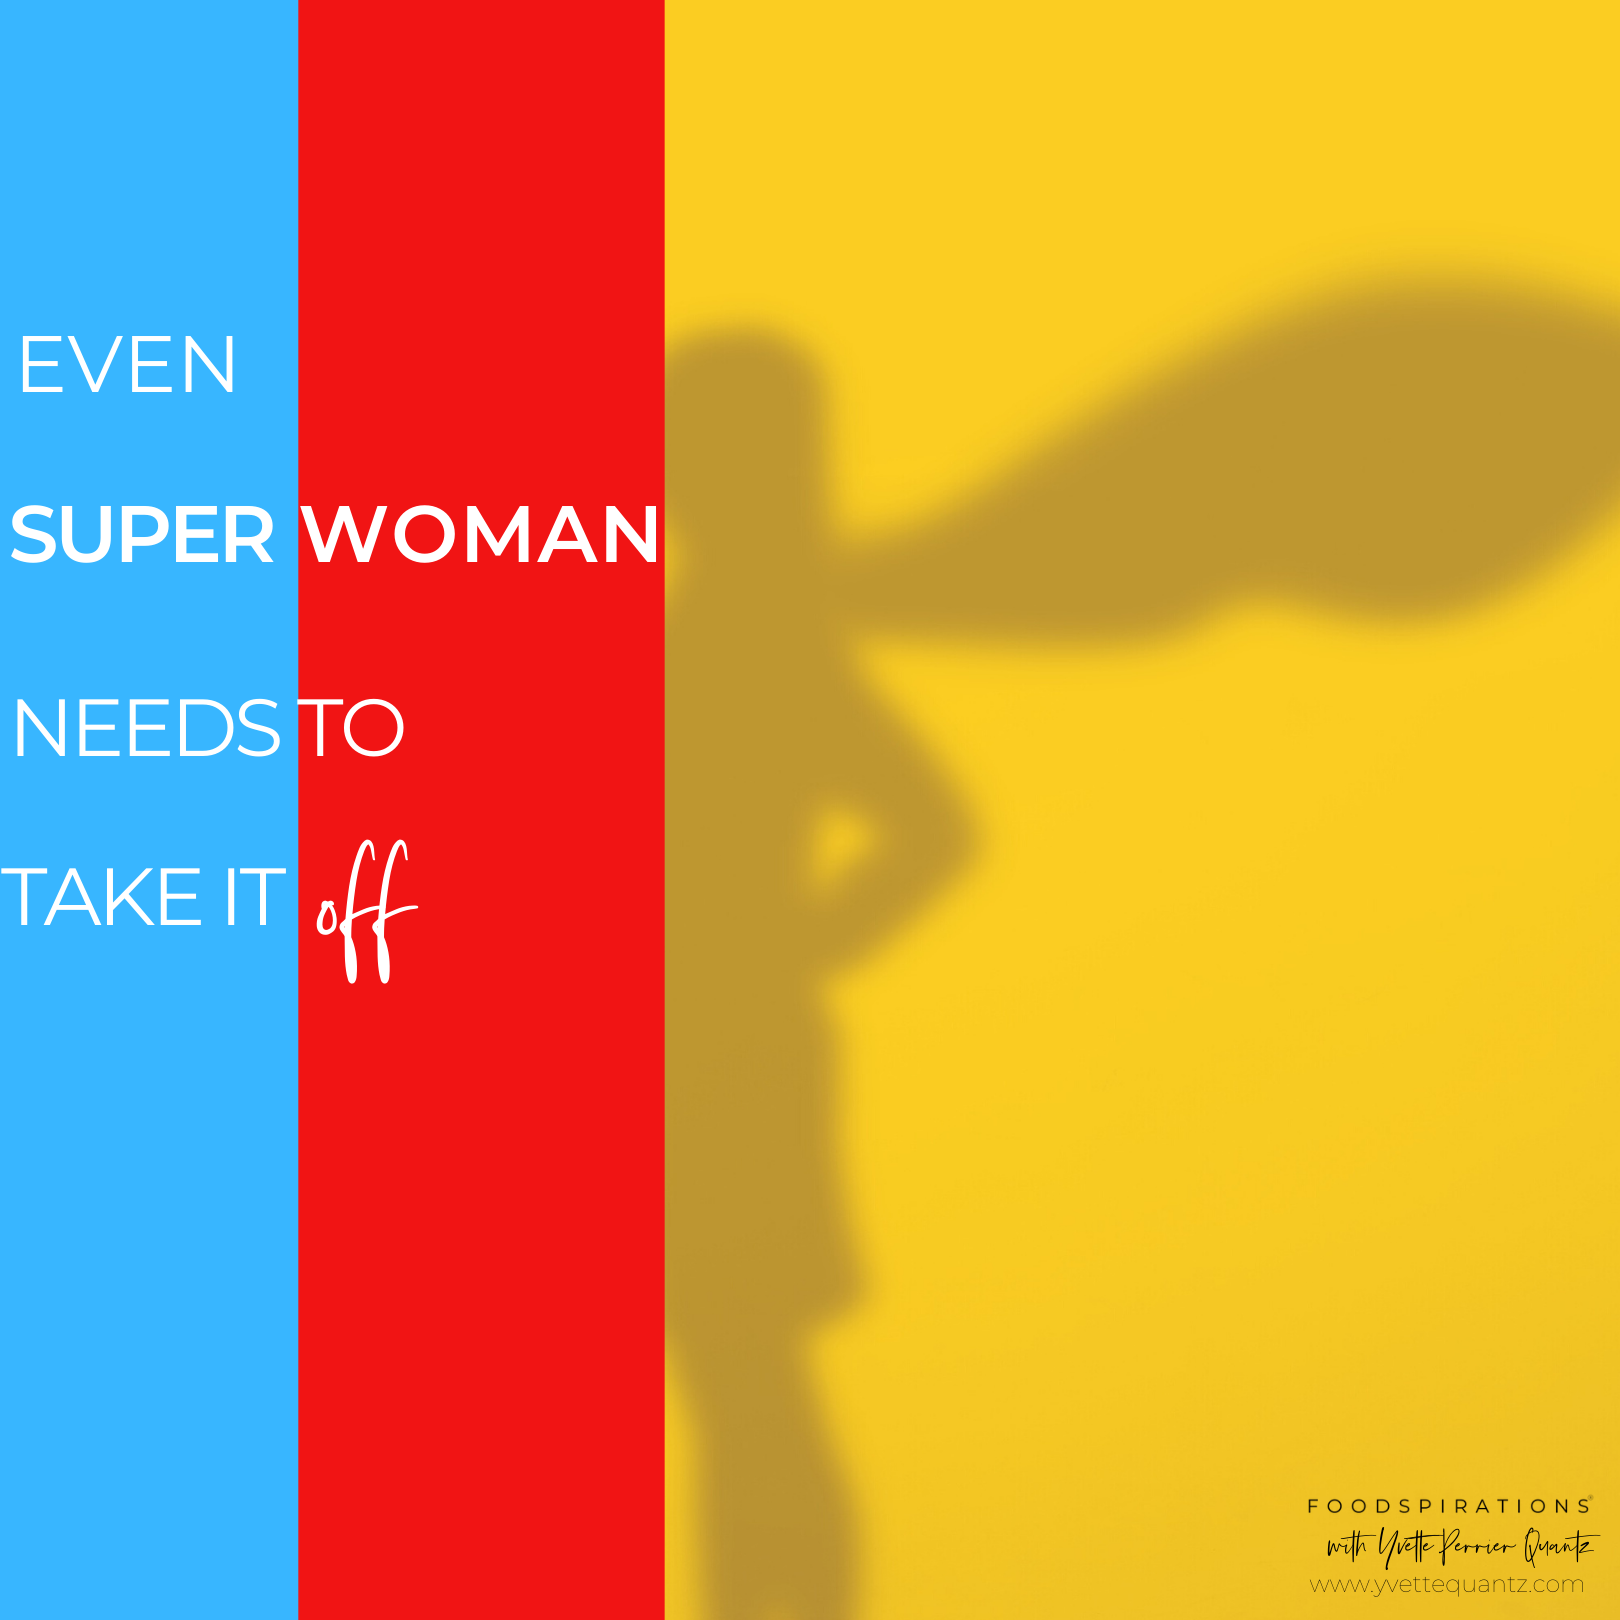 Even Superwoman Needs to Take It Off…